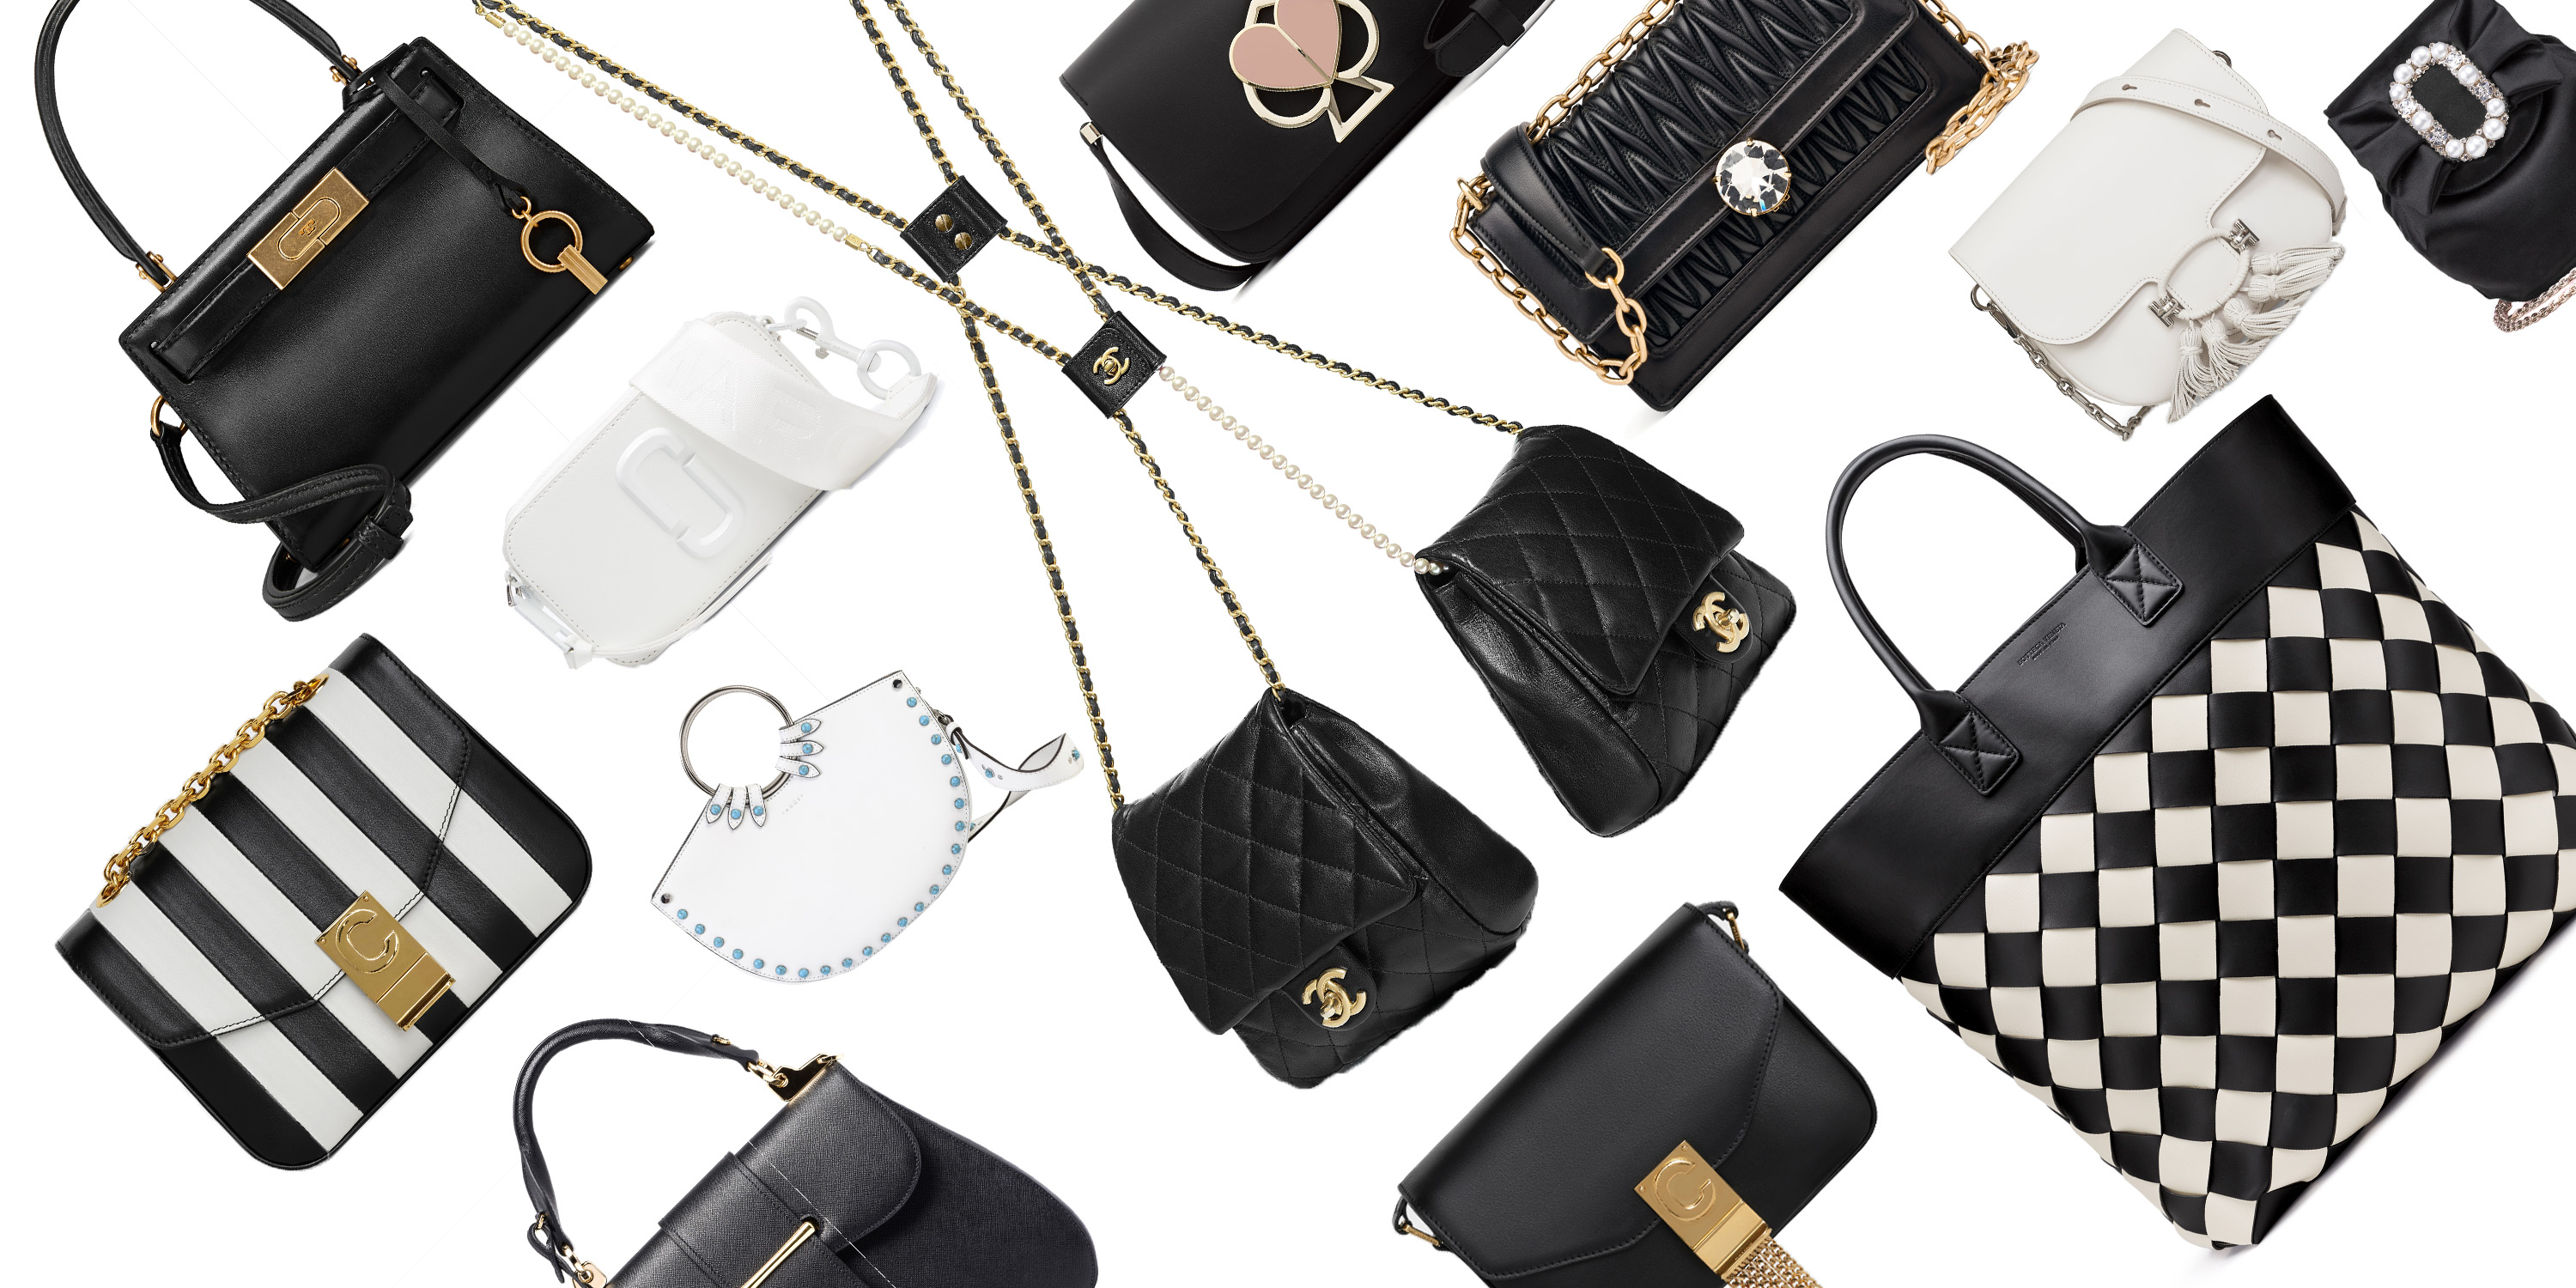 A Comprehensive Guide To This Season's Handbag Launches